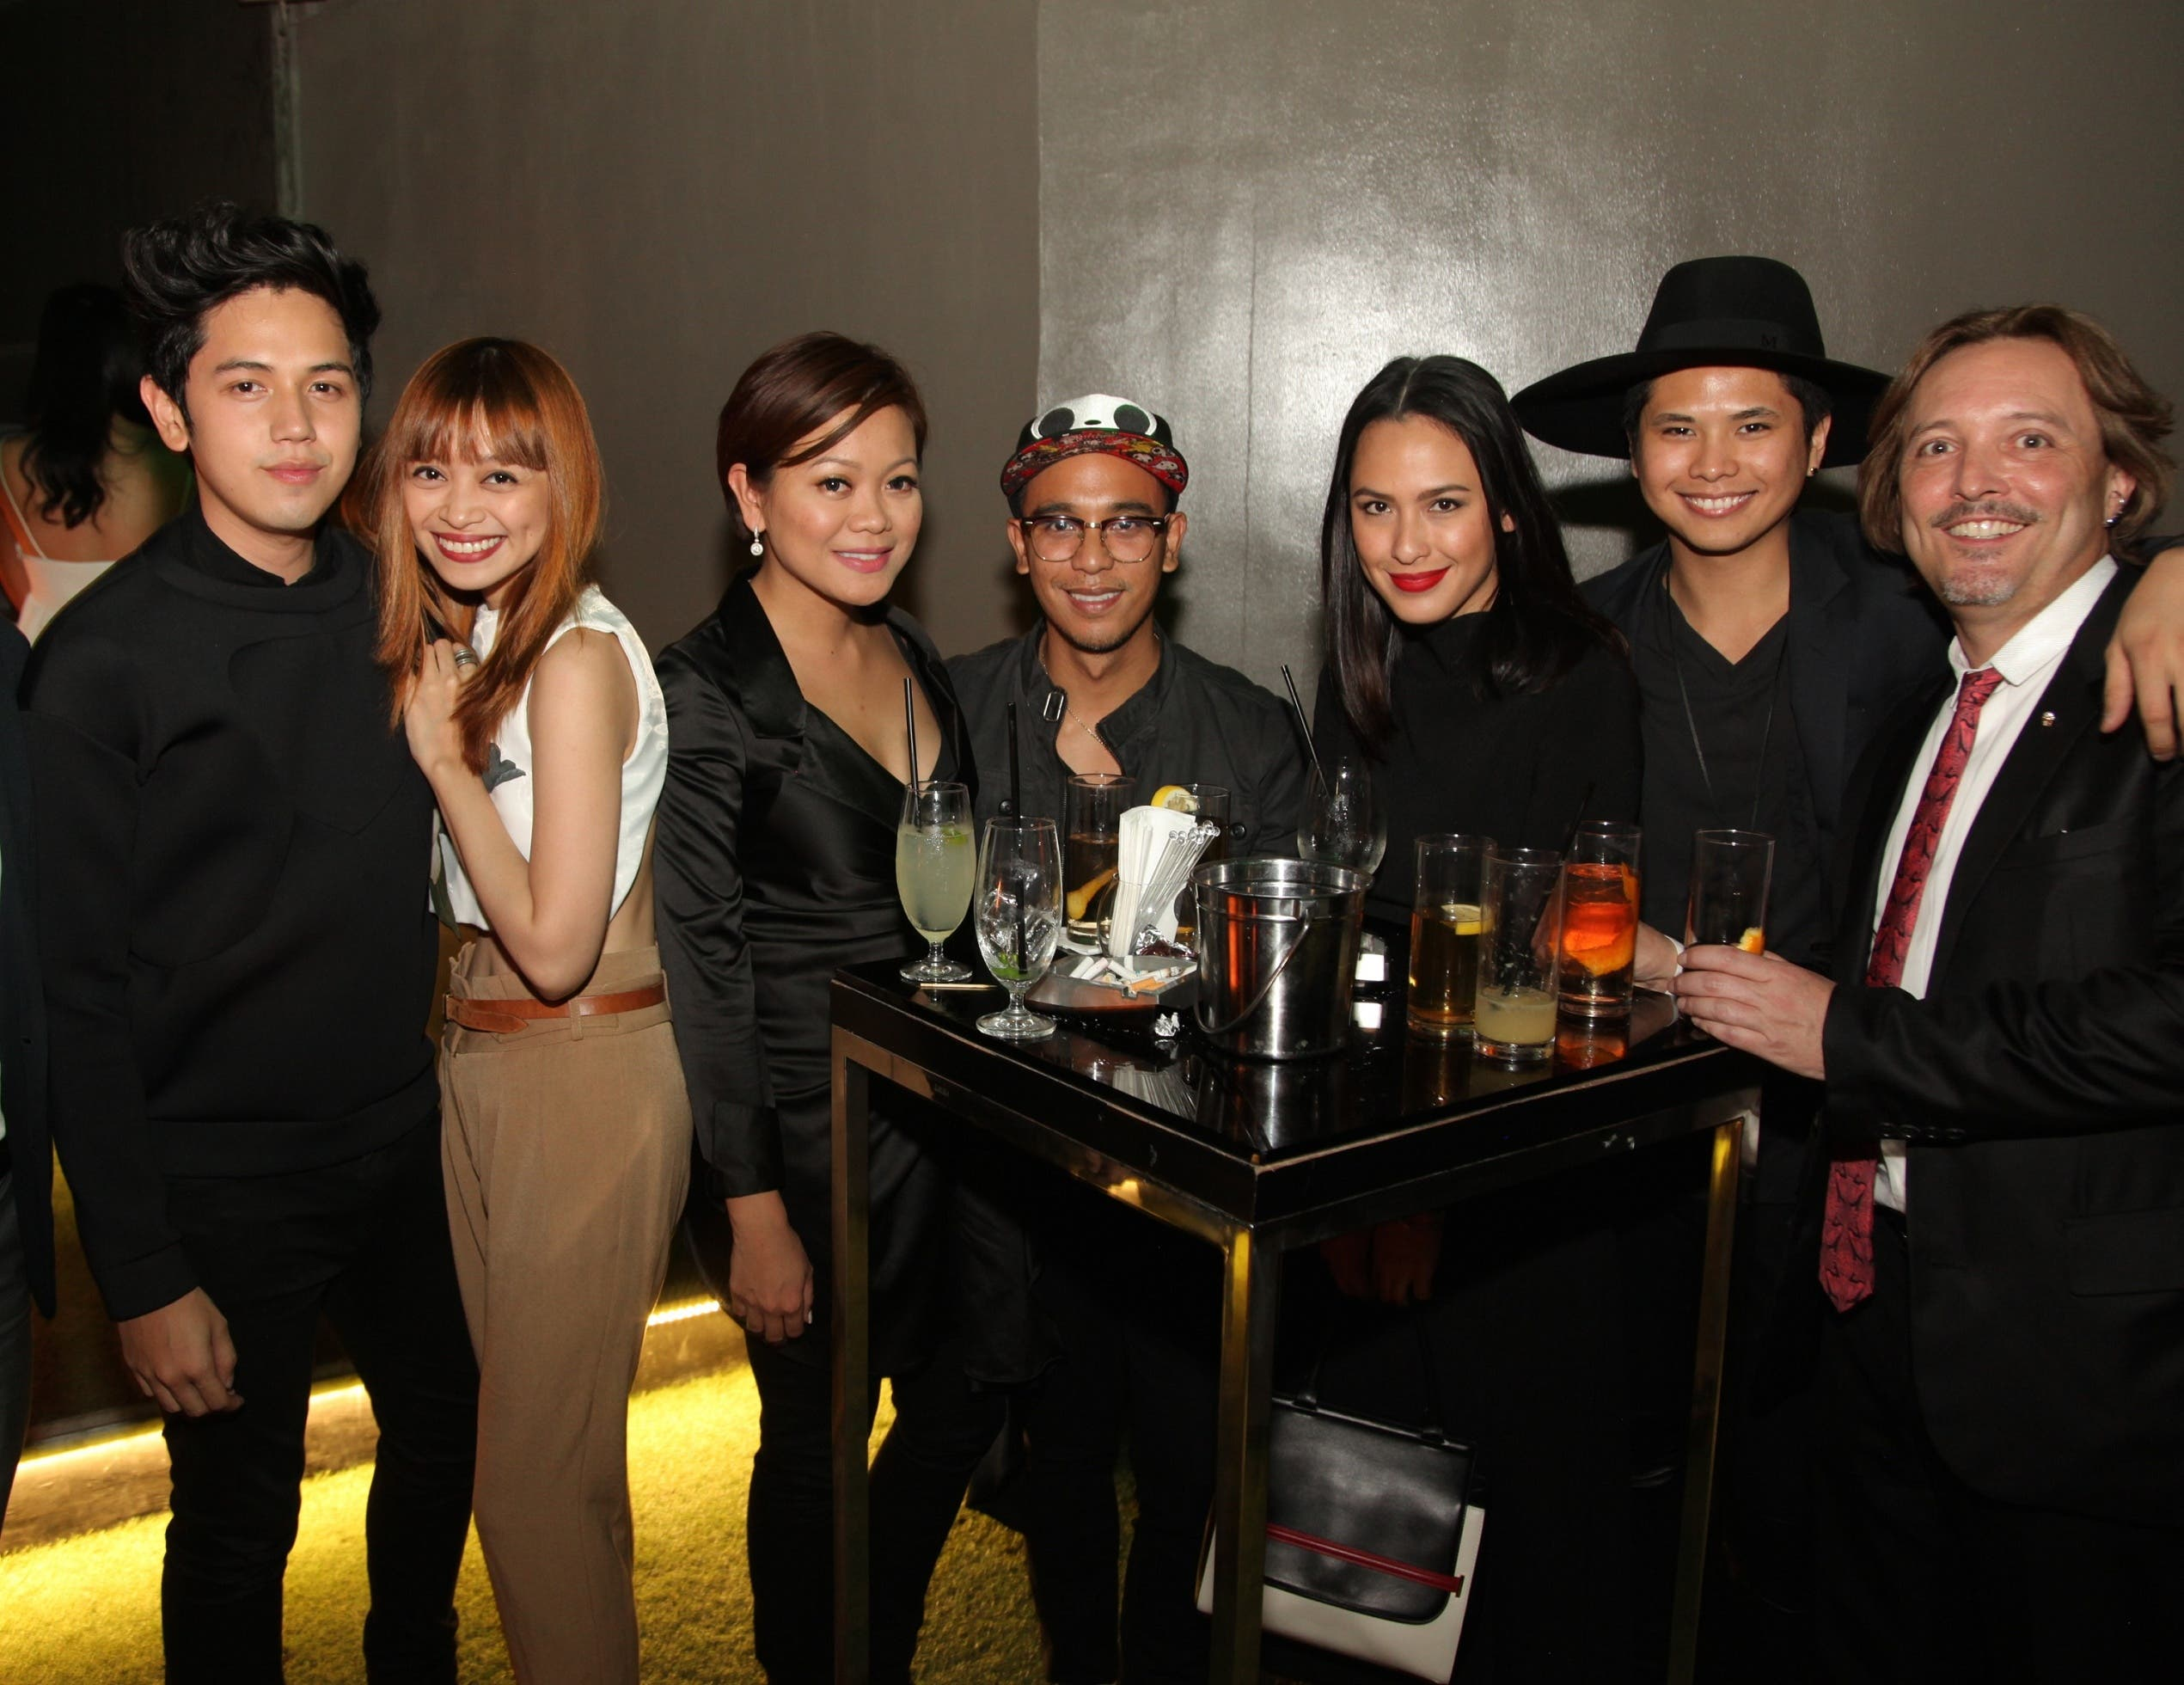 At East Jed Root Talents Photographers BJ Pascual, Shaira Luna, Mau Mauricio, And Stylist Angela Alarcon With Managing Director Au Mauricio, George Inaki And Jed Root